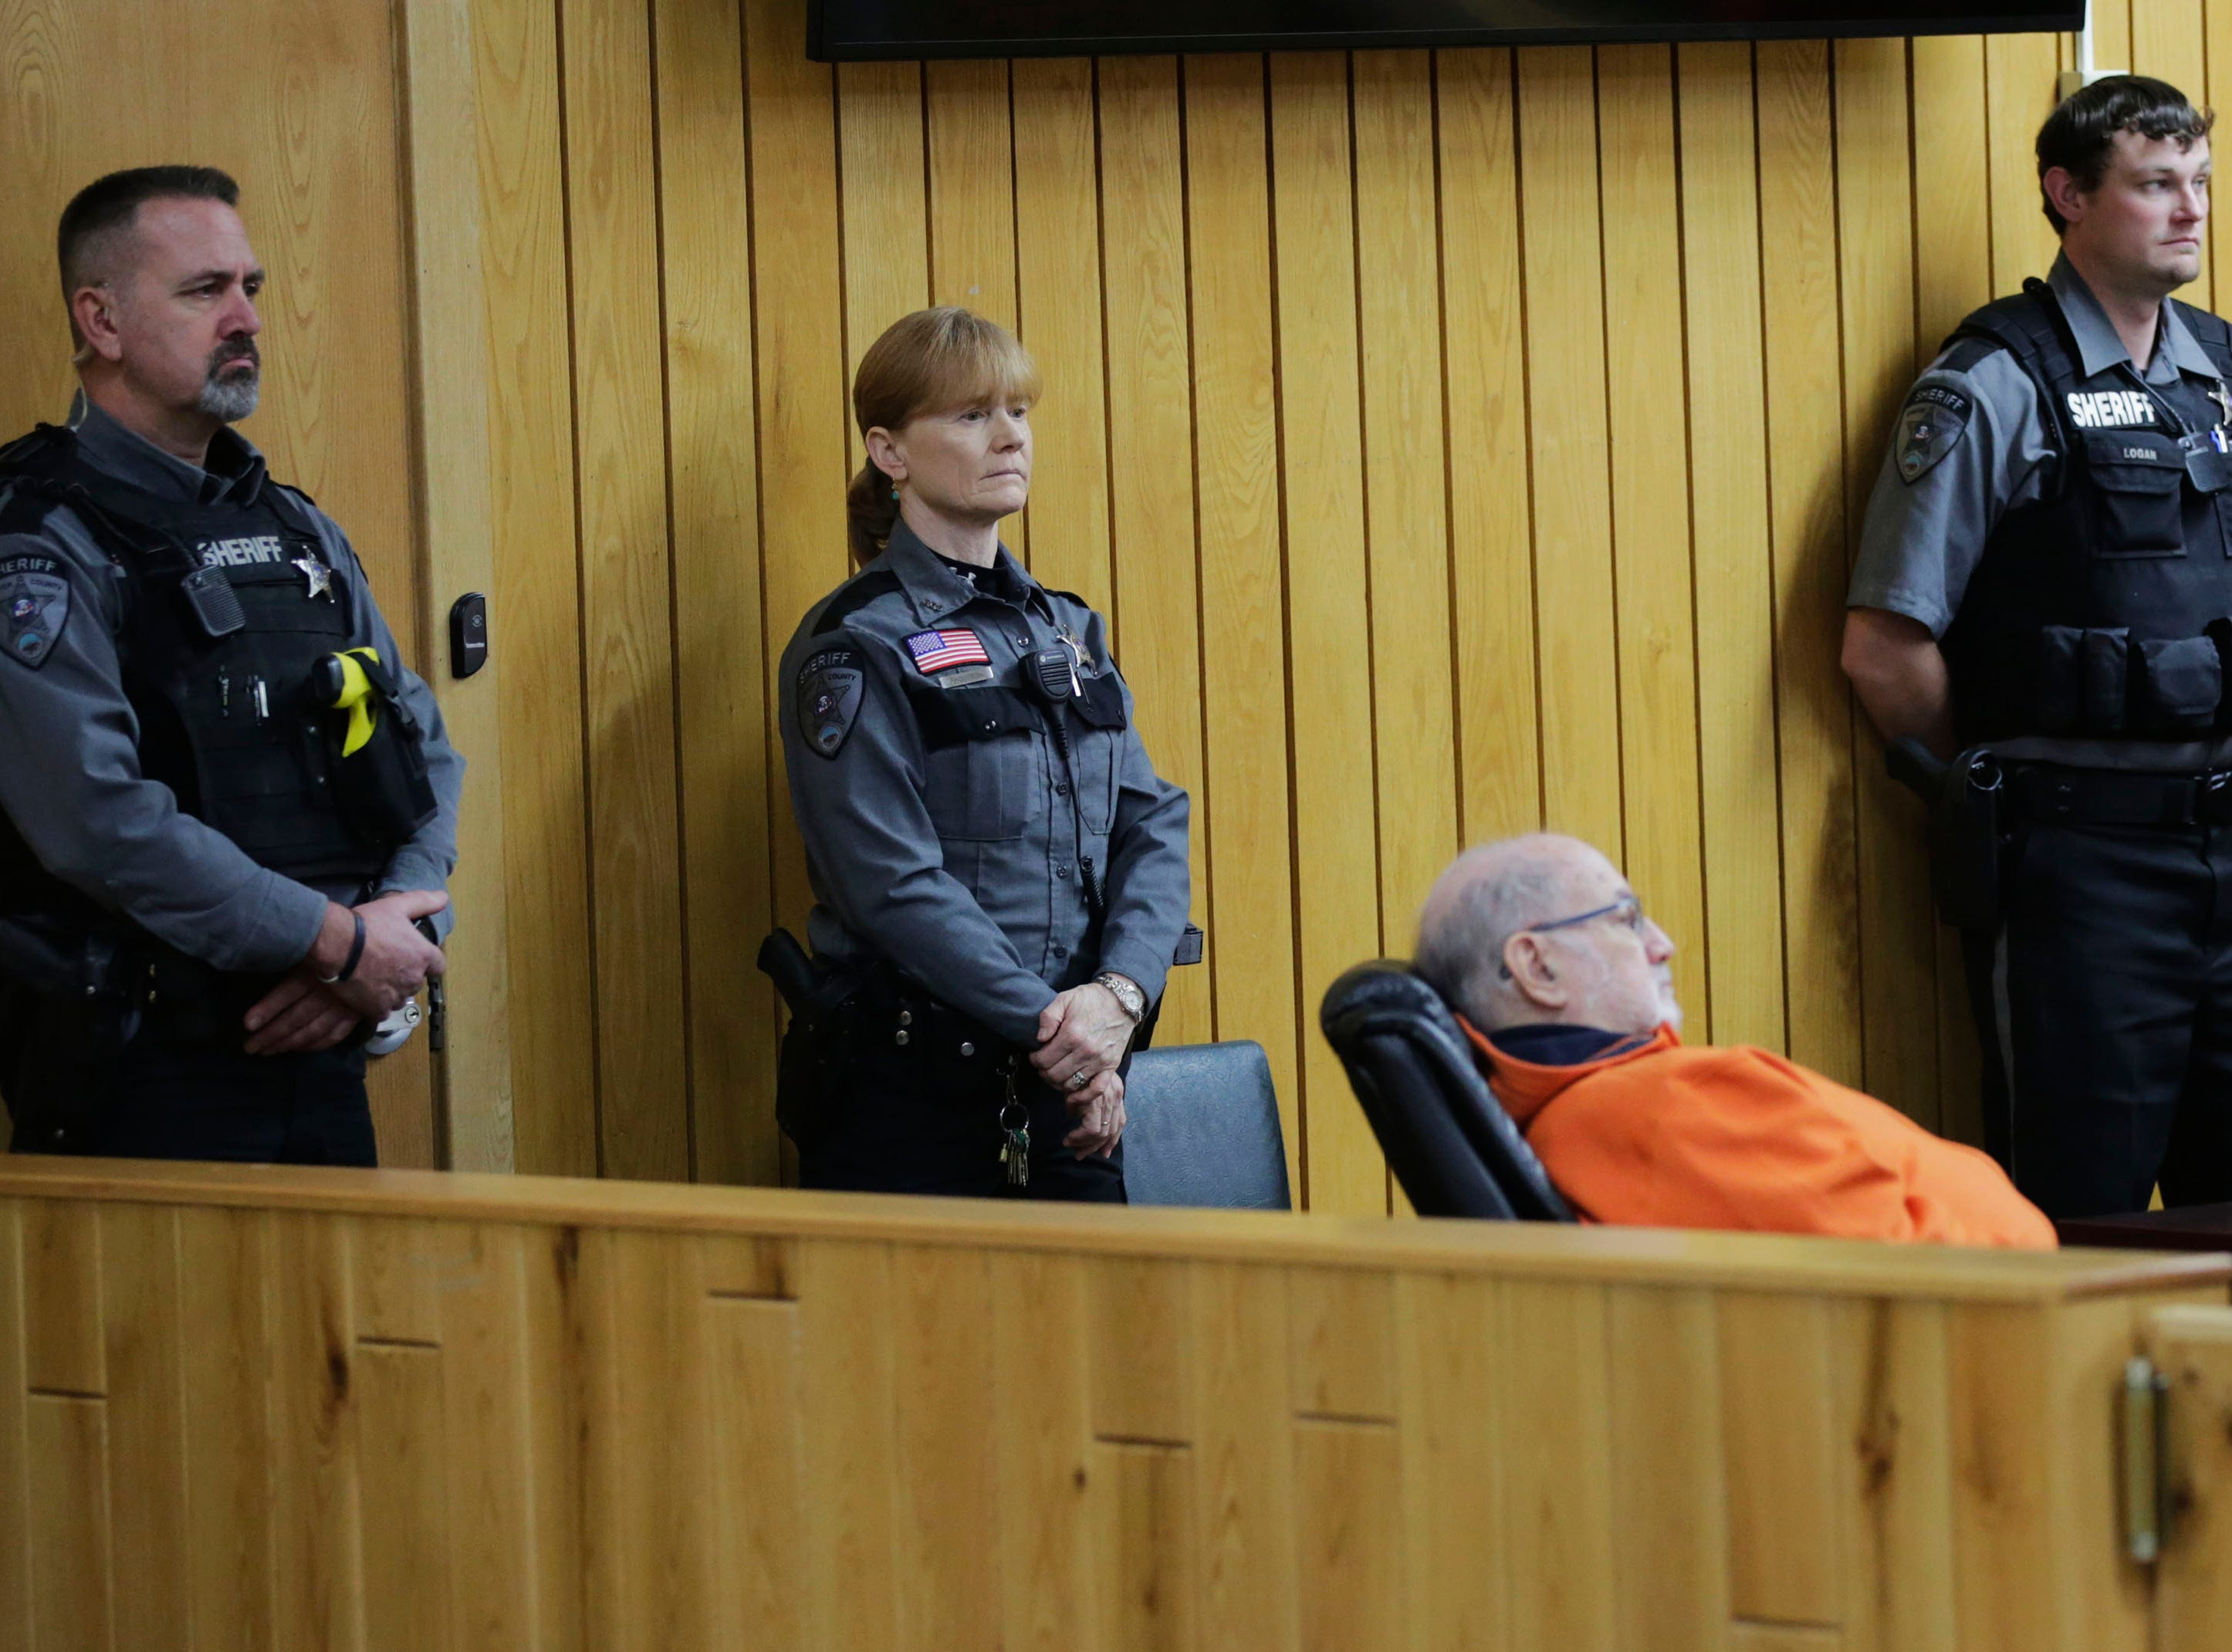 Sawyer County Sheriff's deputies stand guard during a preliminary hearing in the case of former Catholic priest Thomas Ericksen on Wednesday, December 12, 2018, at the Sawyer County courthouse in Hayward, Wis.Tork Mason/USA Today NETWORK-Wisconsin